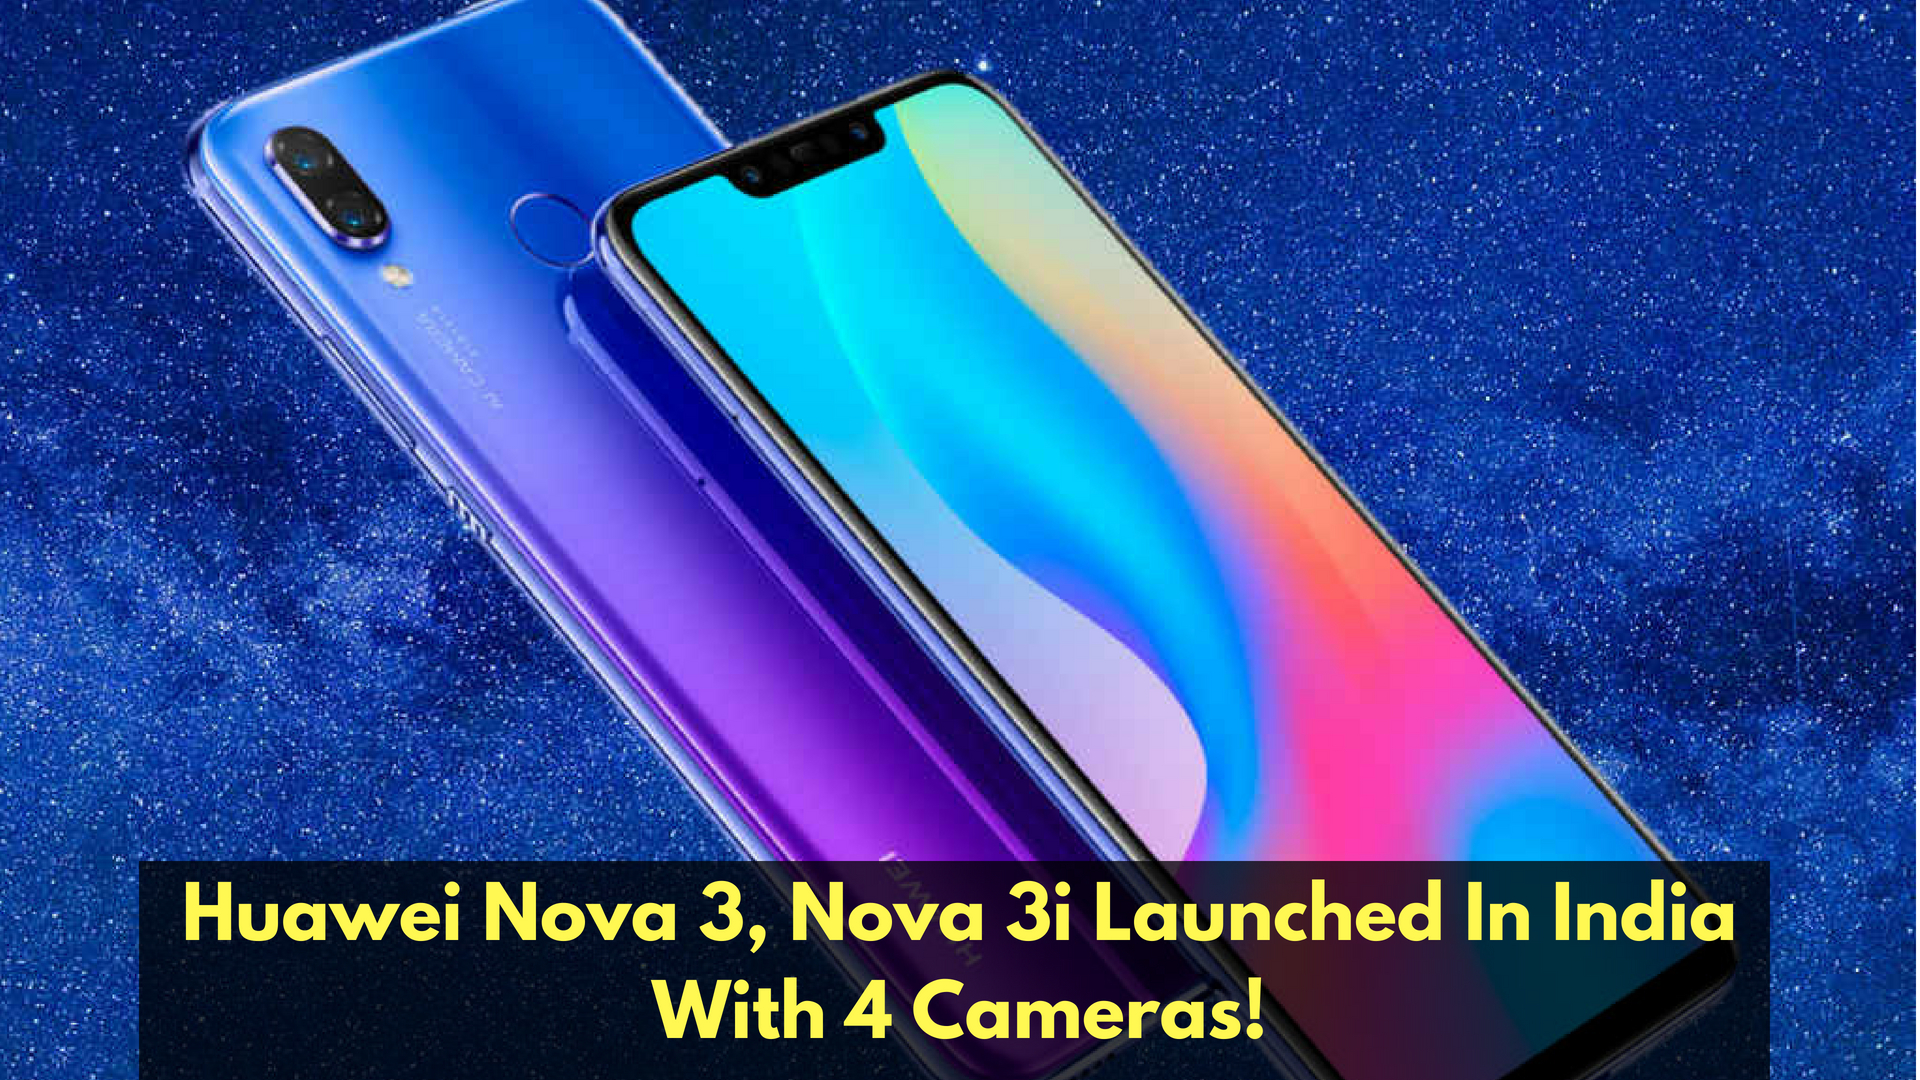 Huawei Nova 3, Nova 3i Launched In India With 4 Cameras AtRs. 20,990!